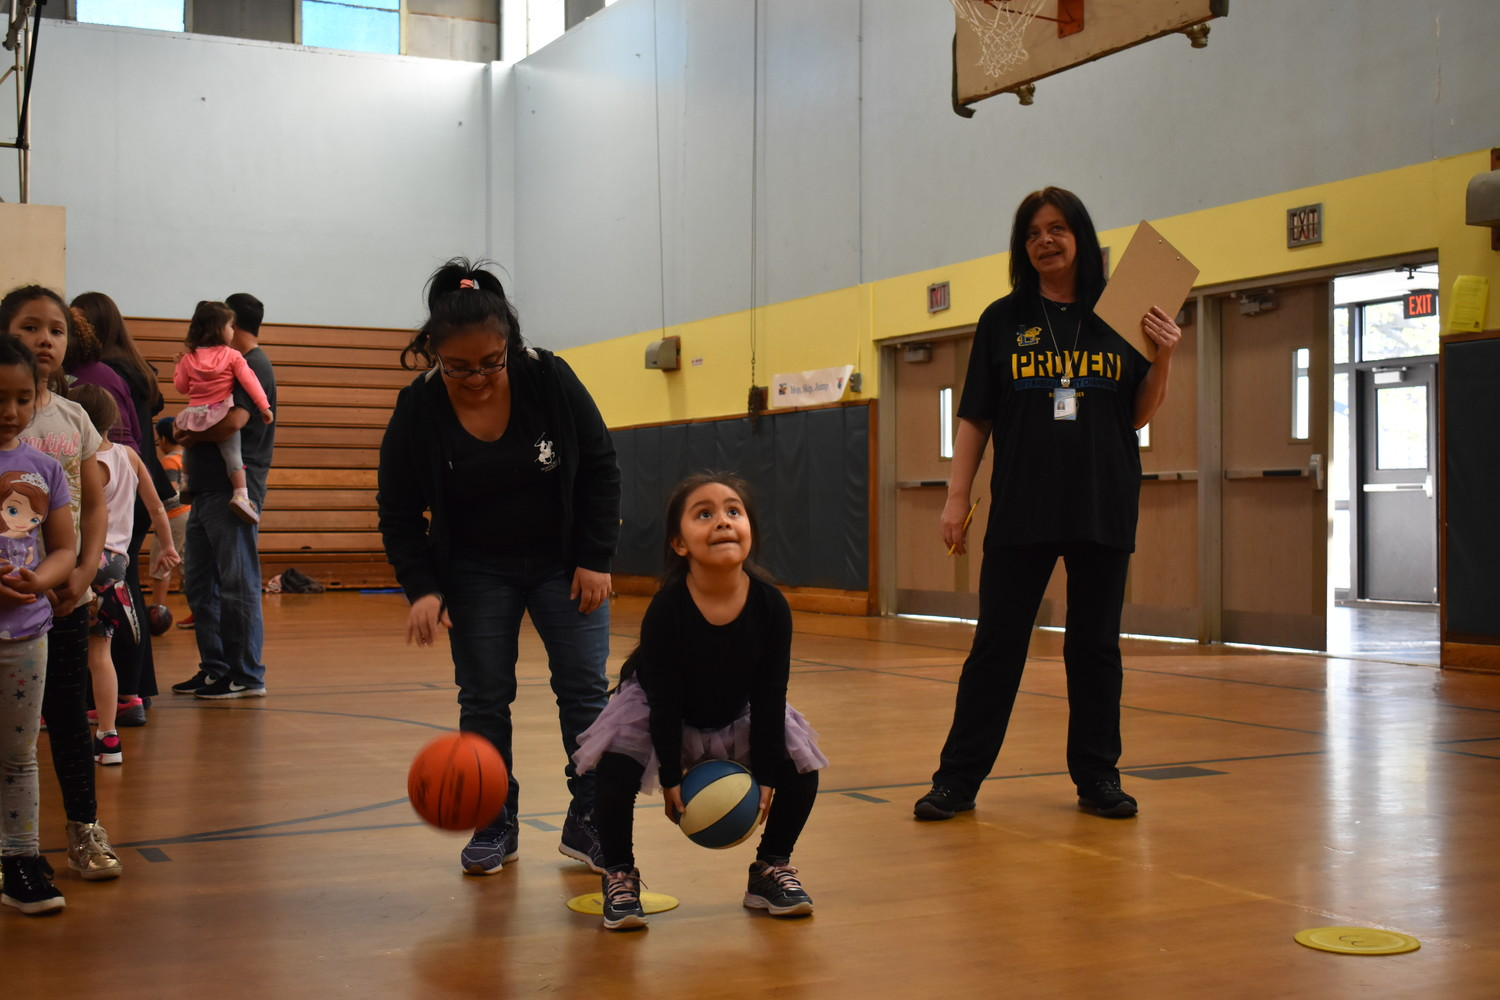 While channeling her inner Rick Barry at the foul line, Allisson Rivas, 6, and her mother, Marlen, played the shooting game Around the World.